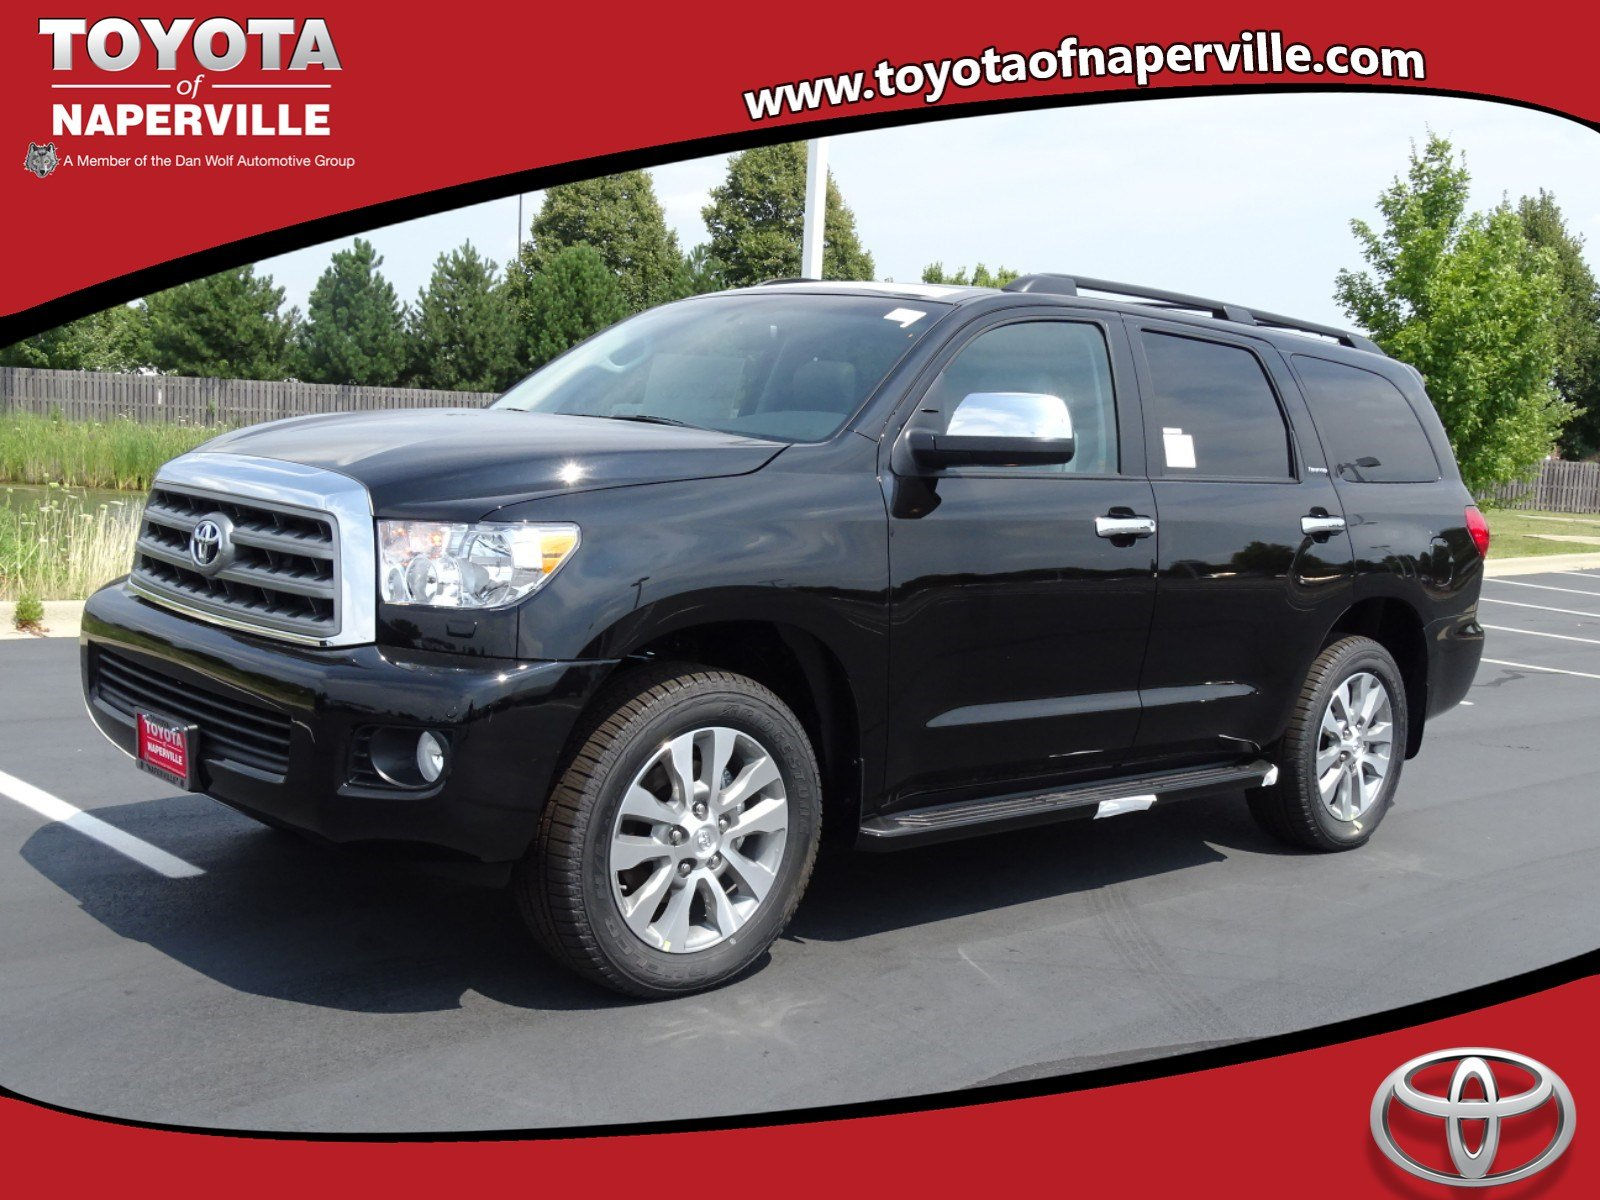 new 2017 toyota sequoia limited 4d sport utility in naperville t25964 toyota of naperville. Black Bedroom Furniture Sets. Home Design Ideas